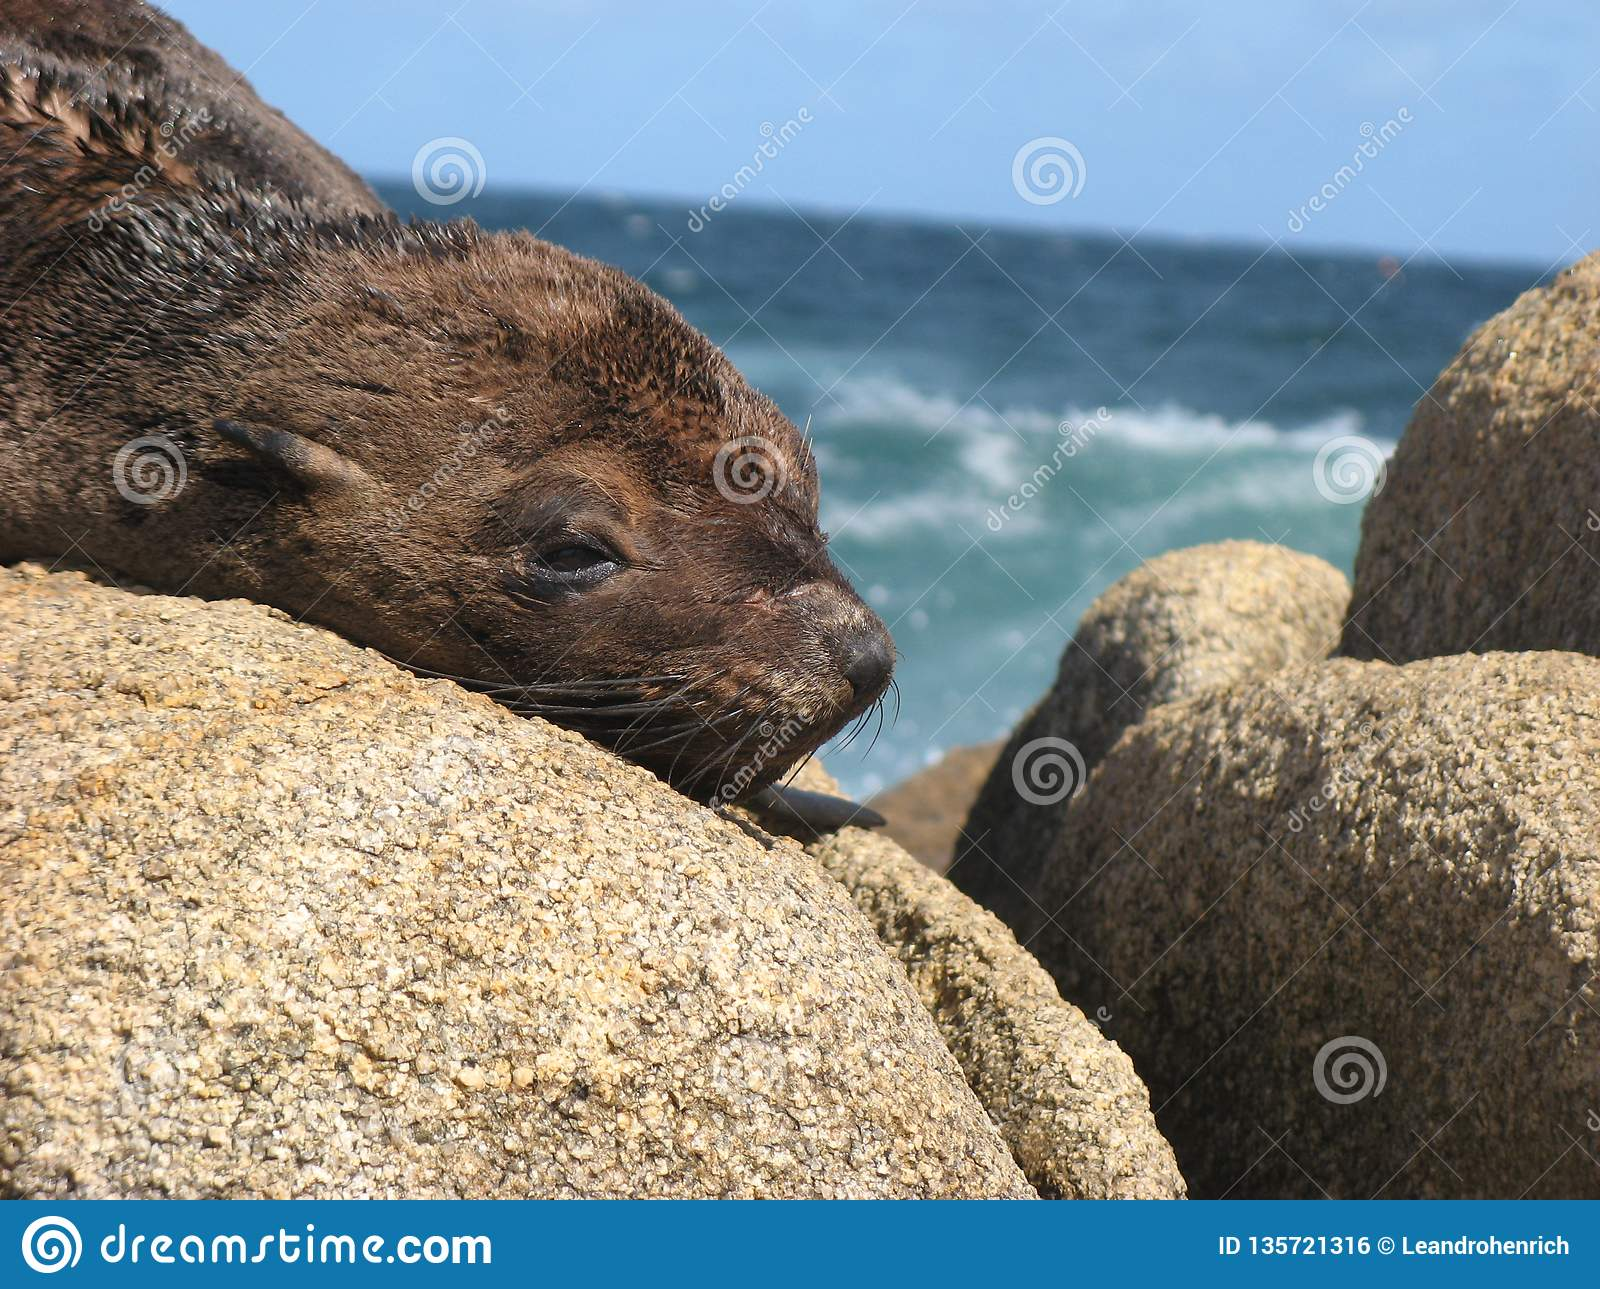 A baby seal resting on the rocks